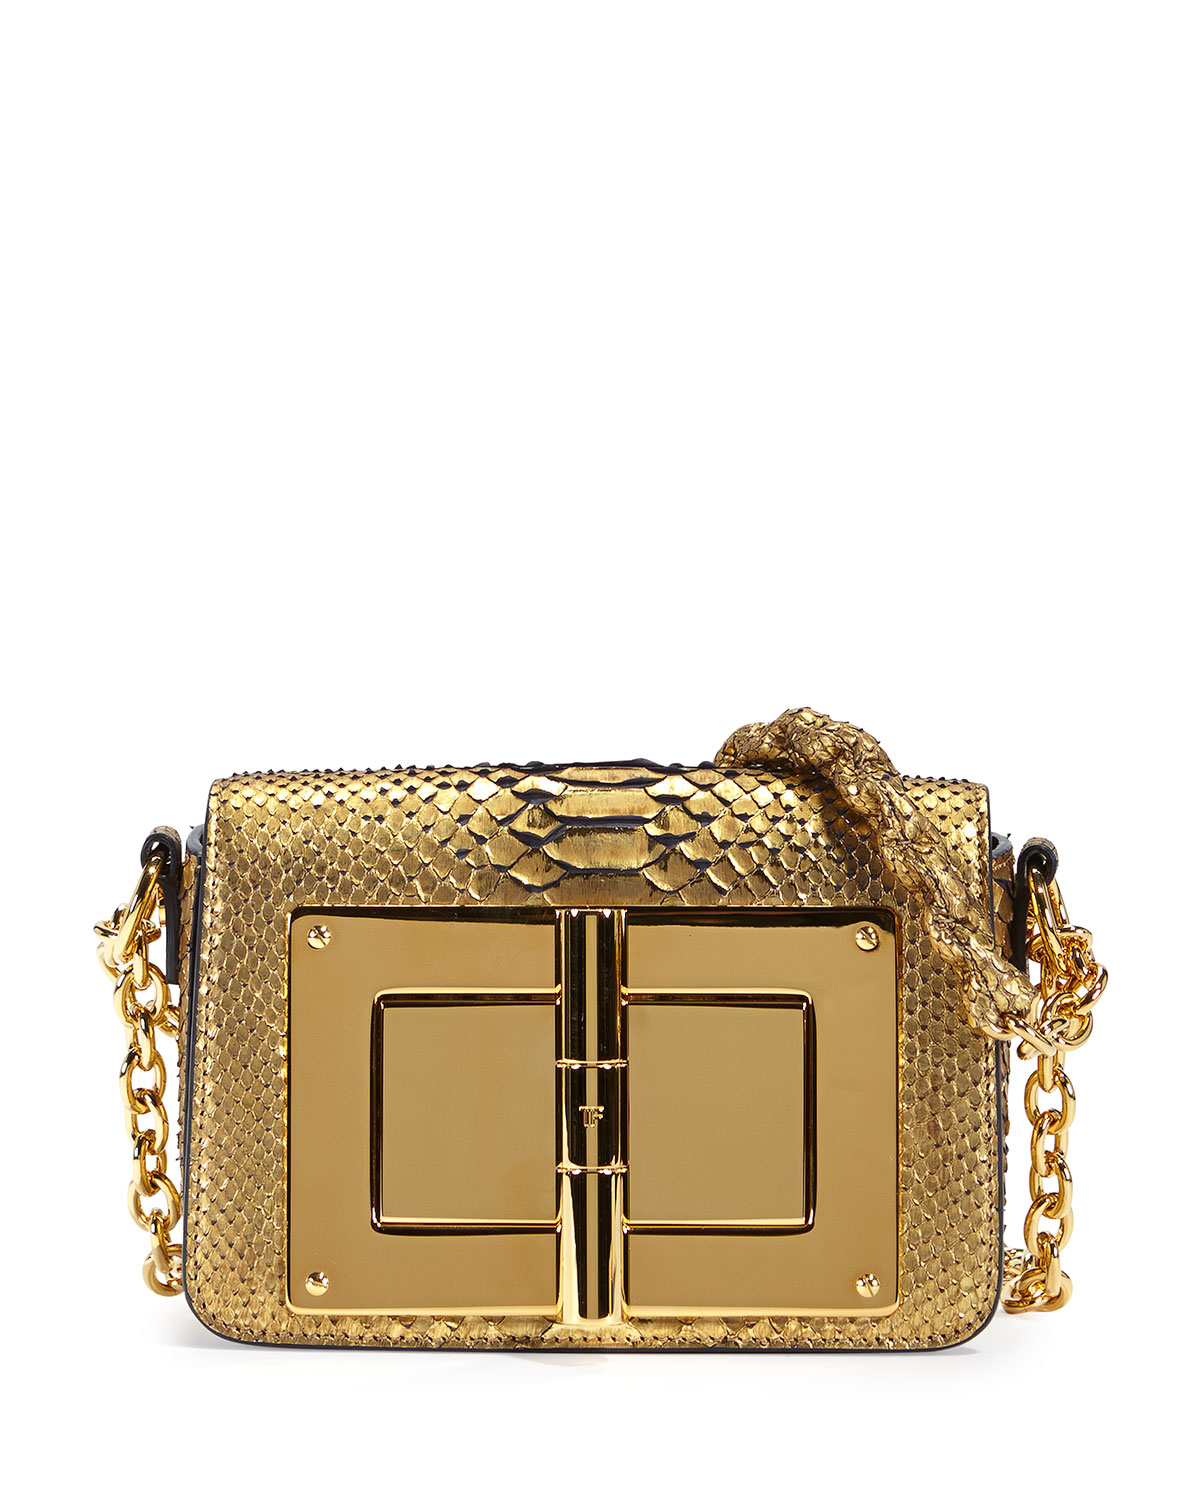 39fee0a8b657 TOM FORD Natalia Metallic Python Chain Shoulder Bag